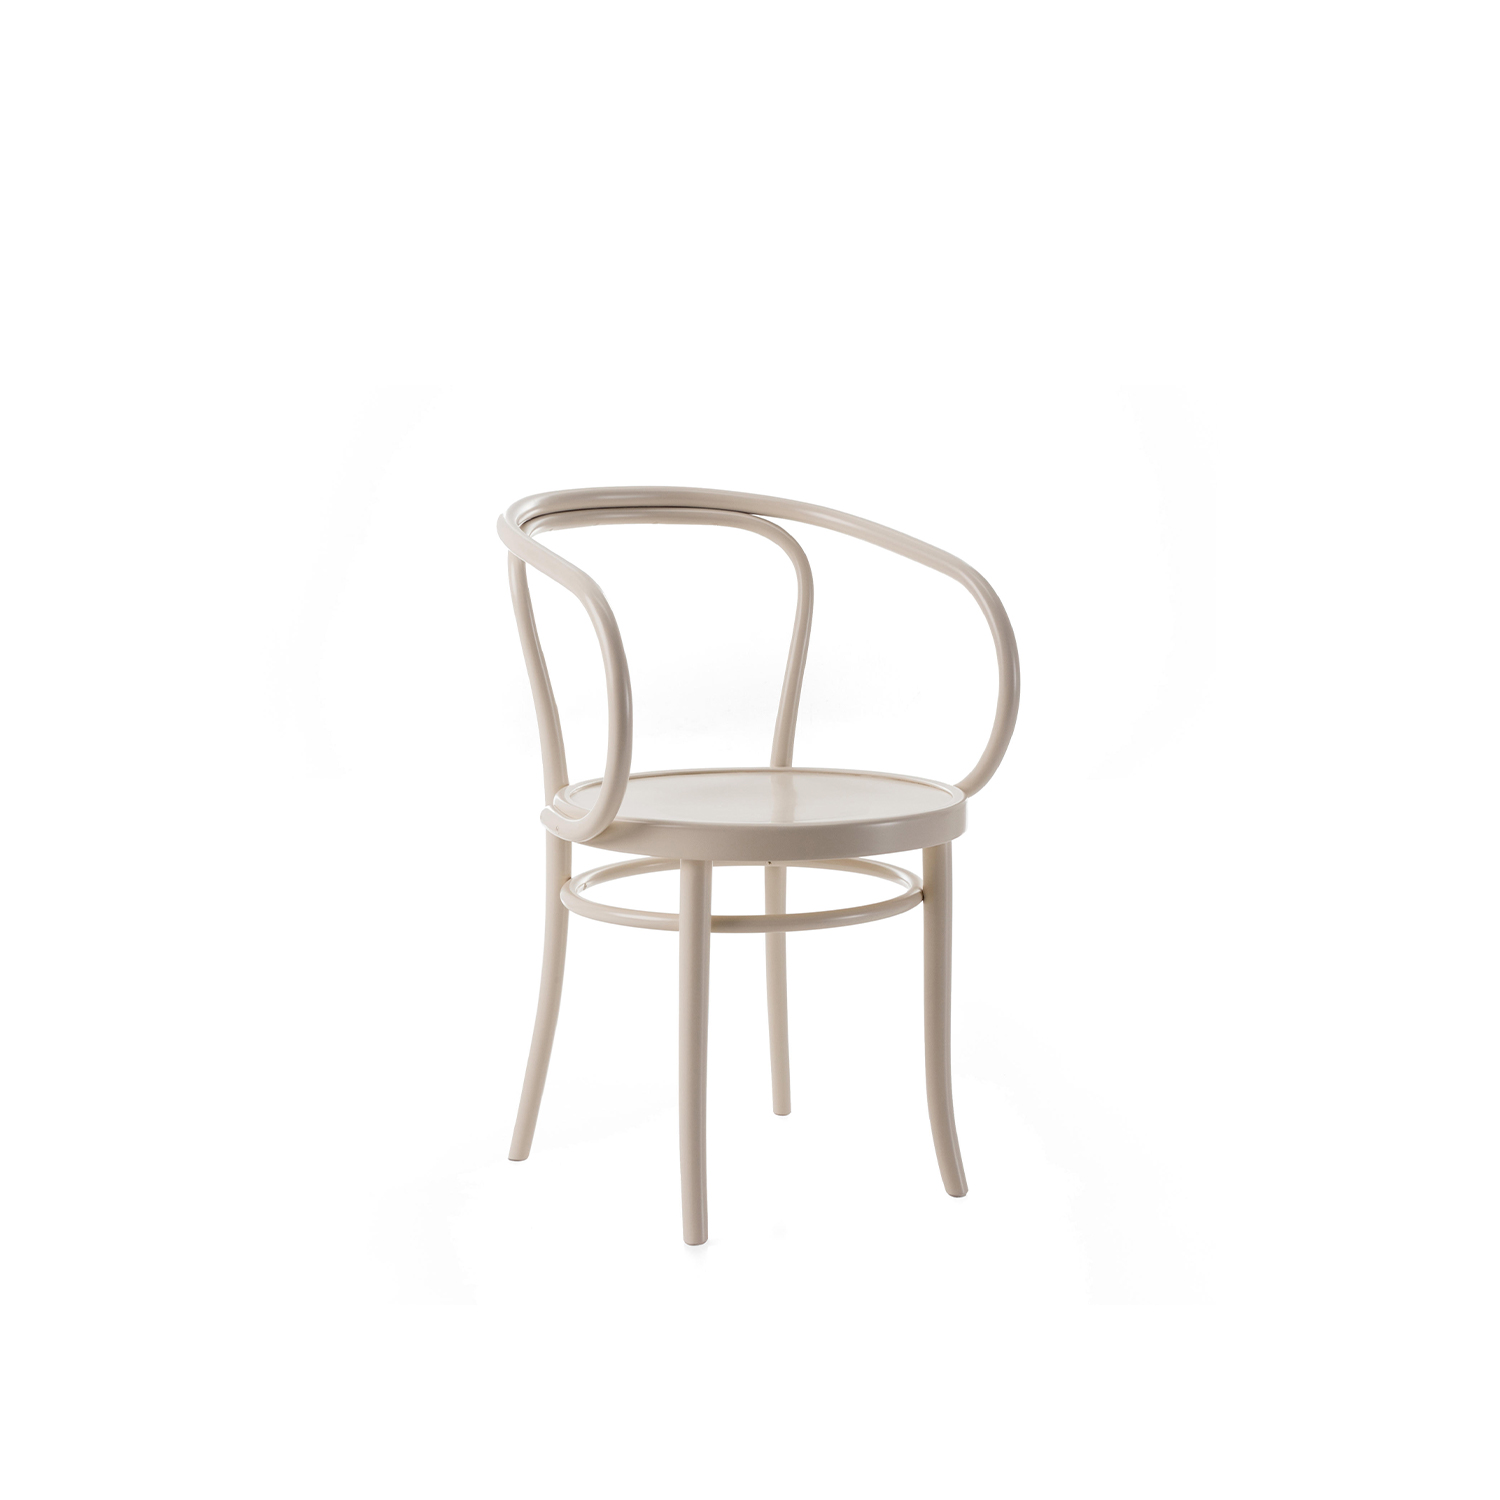 "Wiener Stuhl Armchair - ""A simplified design to create an elegant, comfortable, popular item"". The structure has an all-embracing simplicity, and is formed from just a few elements in steam bent solid beech. The backrest and the back legs are moulded from a single piece of wood. Available with various different seats: woven cane, beech plywood (with or without piercing), or padded and upholstered in leather or fabric to match the backrest.